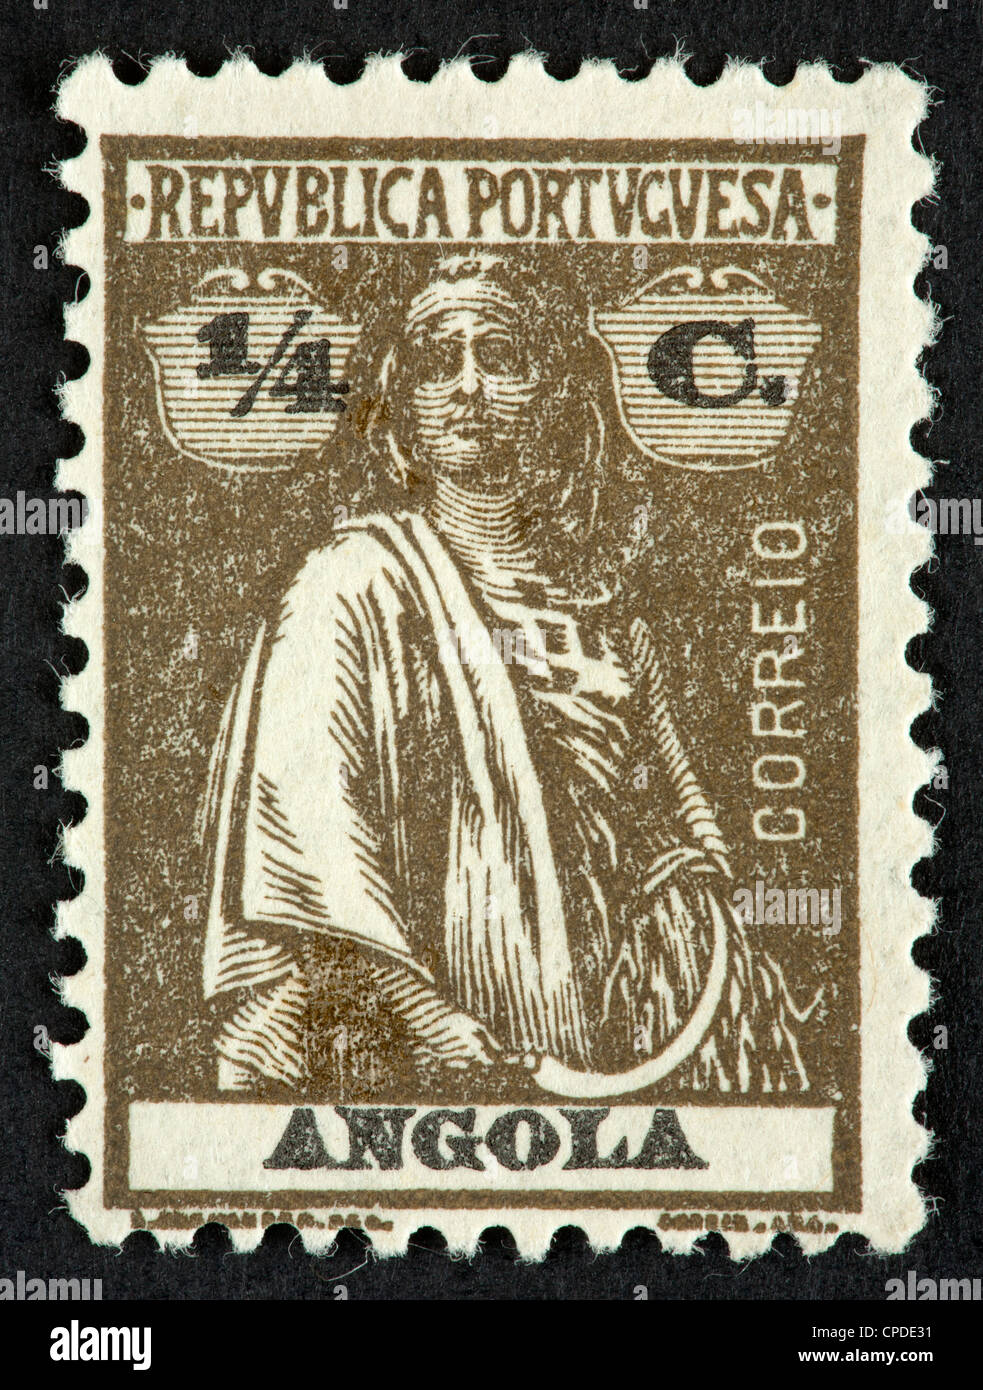 Portuguese Angola postage stamp - Stock Image